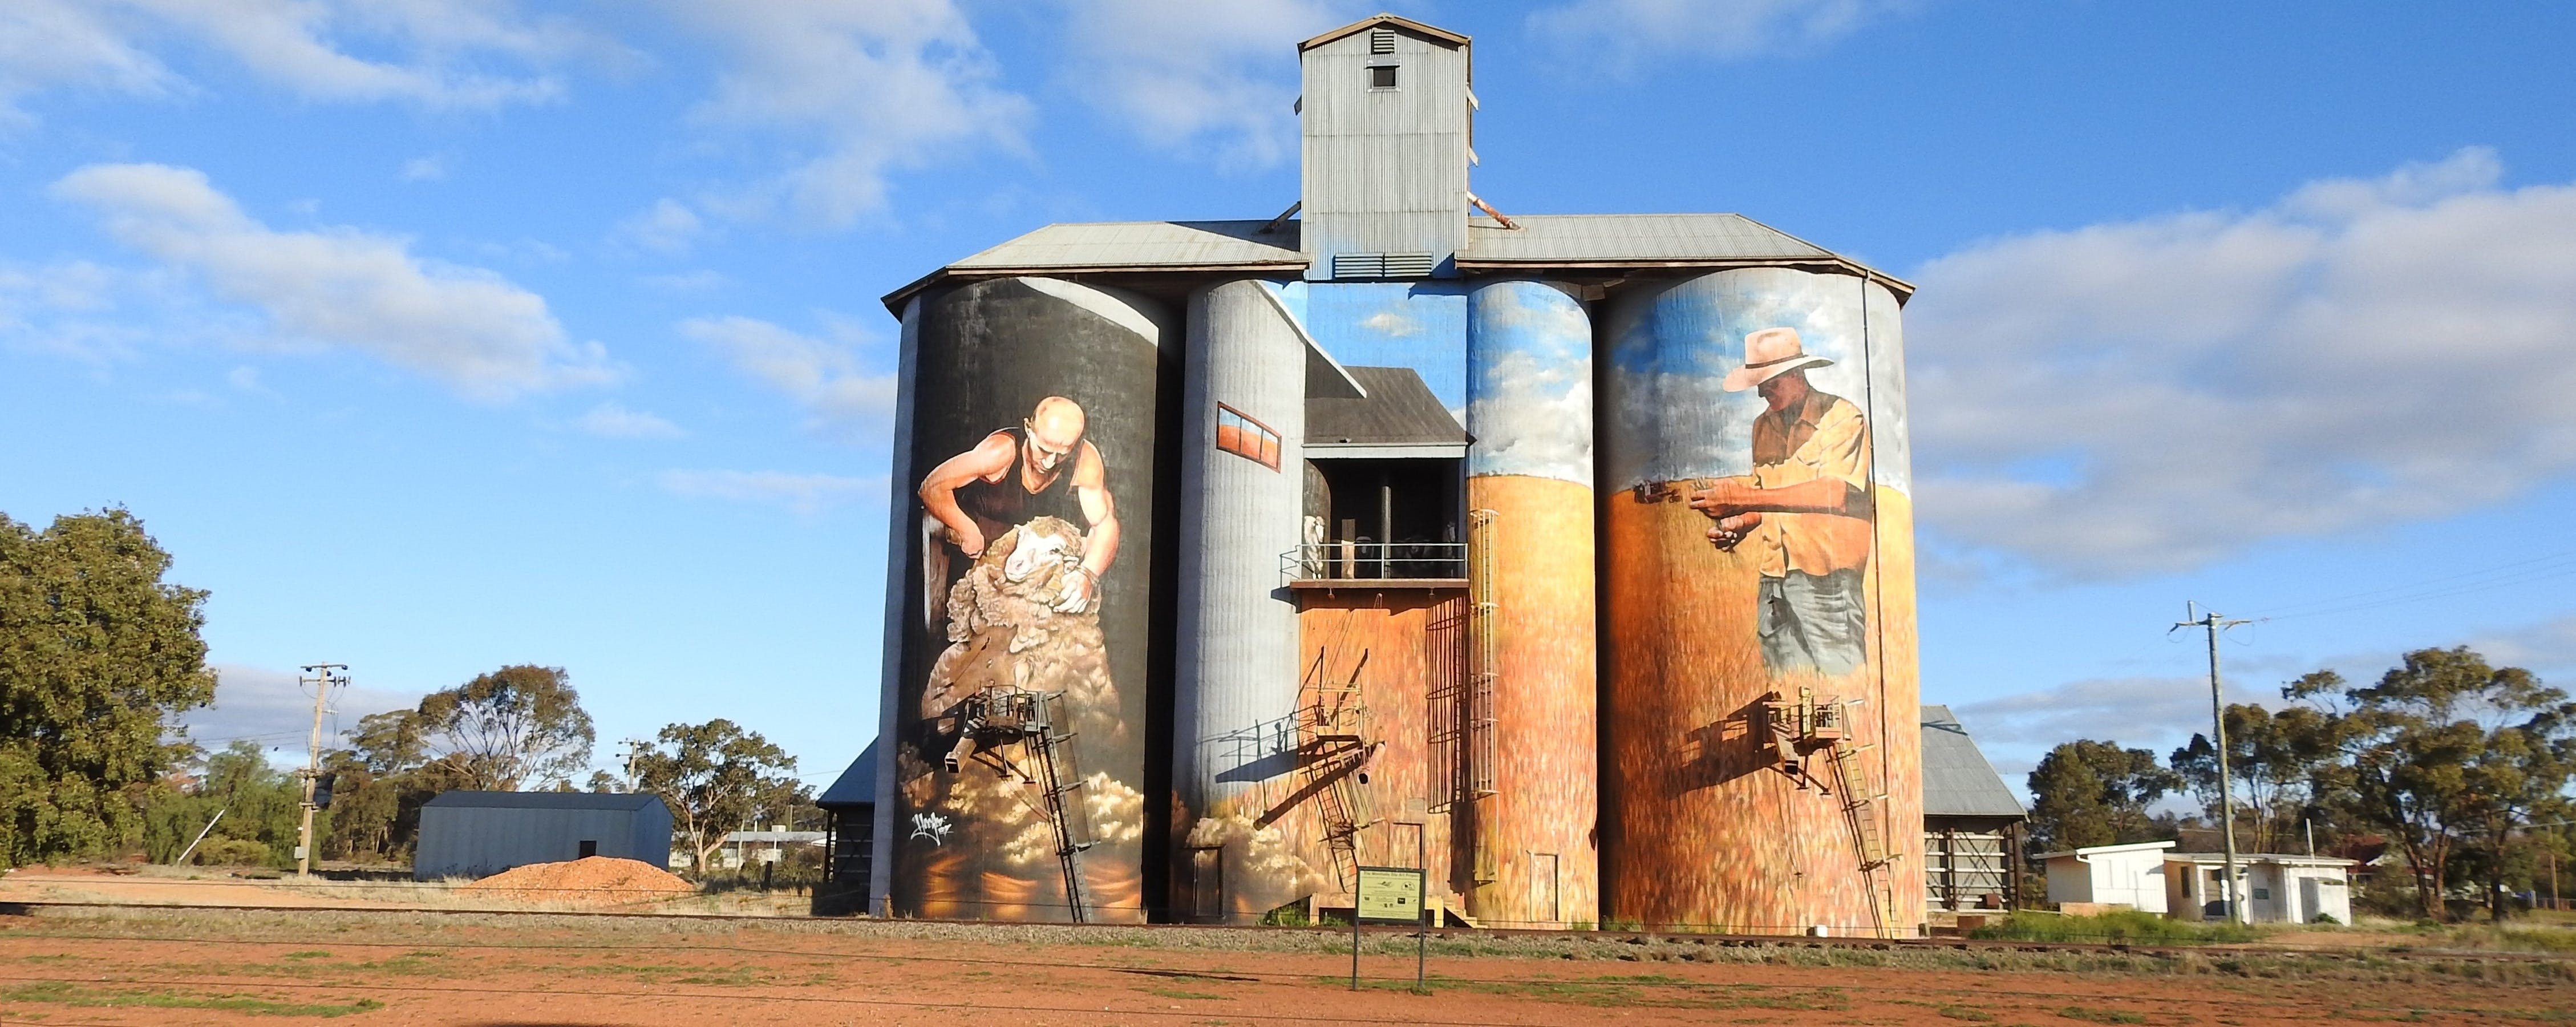 Riverina Outdoor Art Trail - Tourism Brisbane